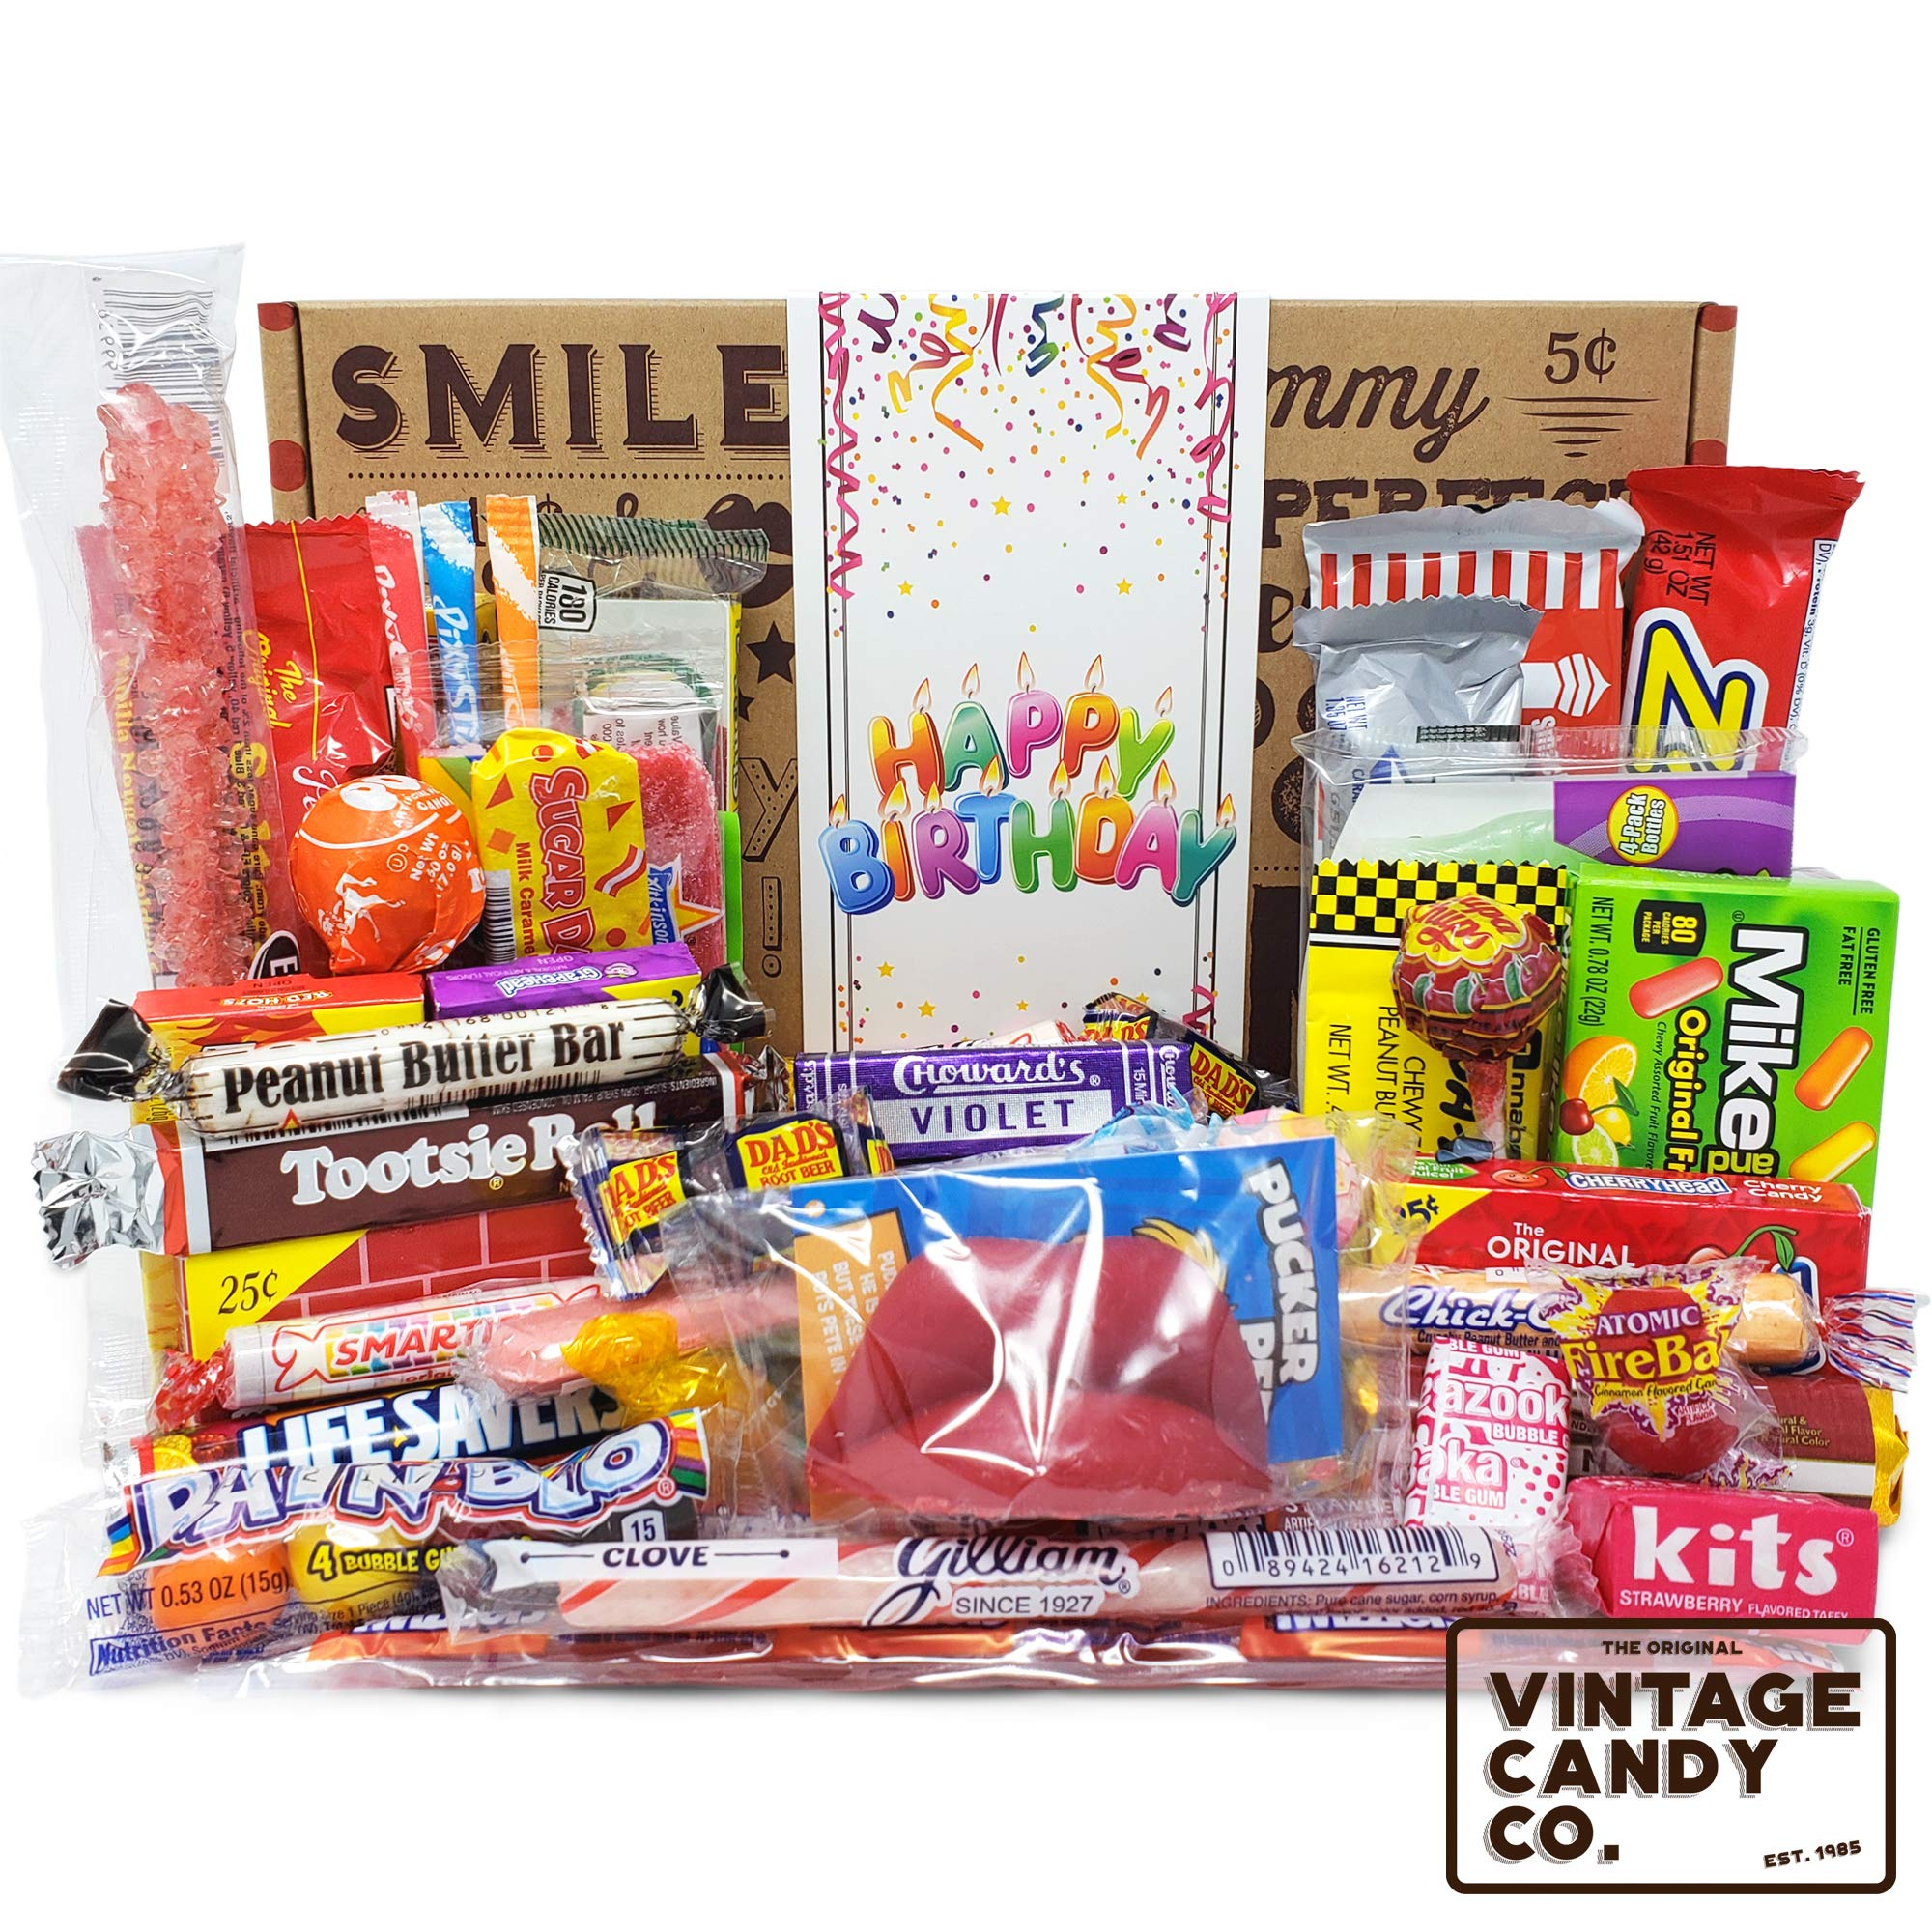 VINTAGE CANDY CO. HAPPY BIRTHDAY NOSTALGIA YEARS CANDY CARE PACKAGE - Retro Candies Assortment Variety - GAG GIFT BASKET - PERFECT For Adults, College Student, Military, Teens, Man, Woman, Boy or Girl